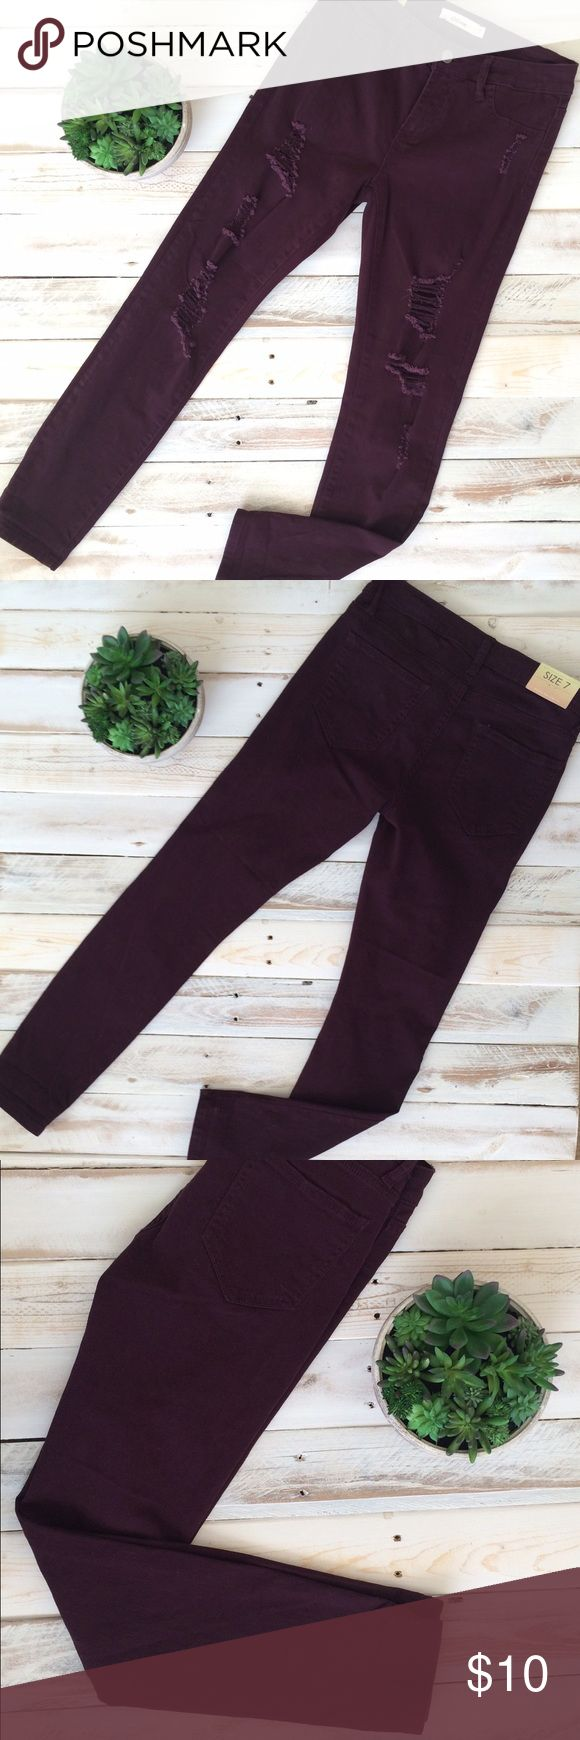 Cello Skinny Jeans The softest denim in the skinniest fit, you'll love the Cello Burgundy Skinny Jeans. Convert from skinny to cropped wear it 2 ways. Size: 7 Jeans Skinny